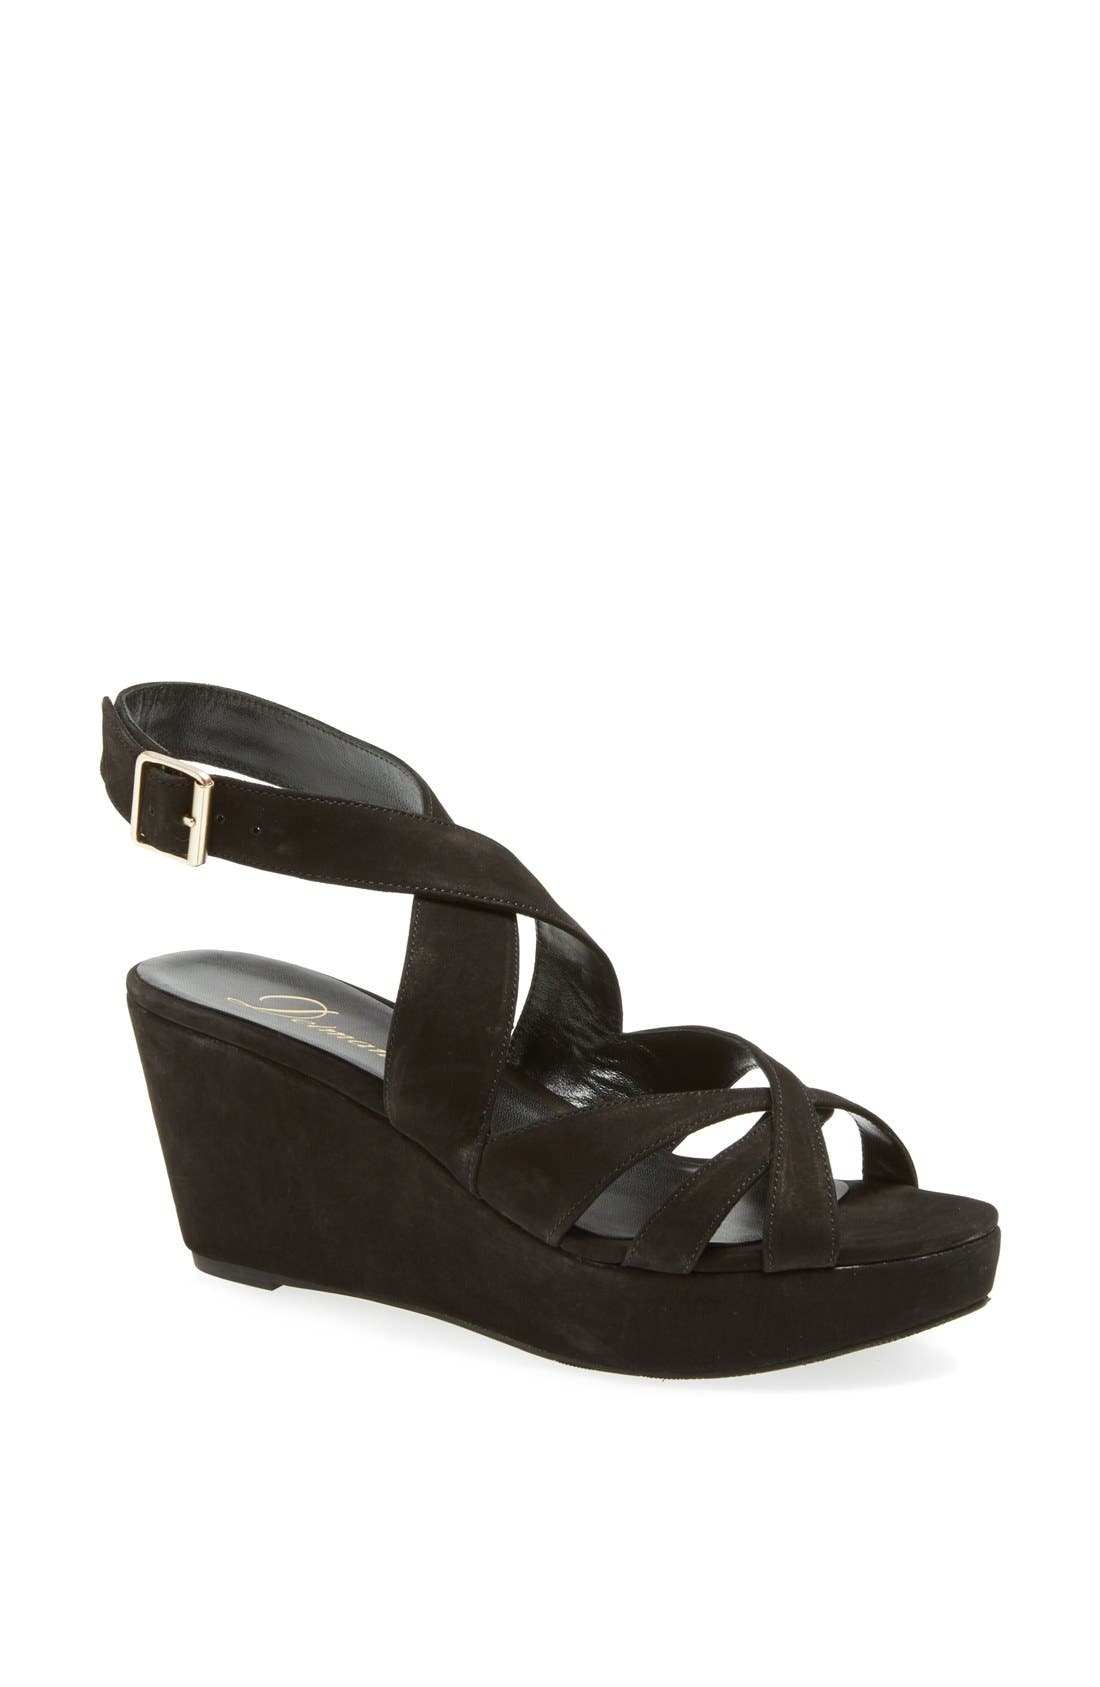 Alternate Image 1 Selected - Delman 'Clara' Sandal (Online Only)